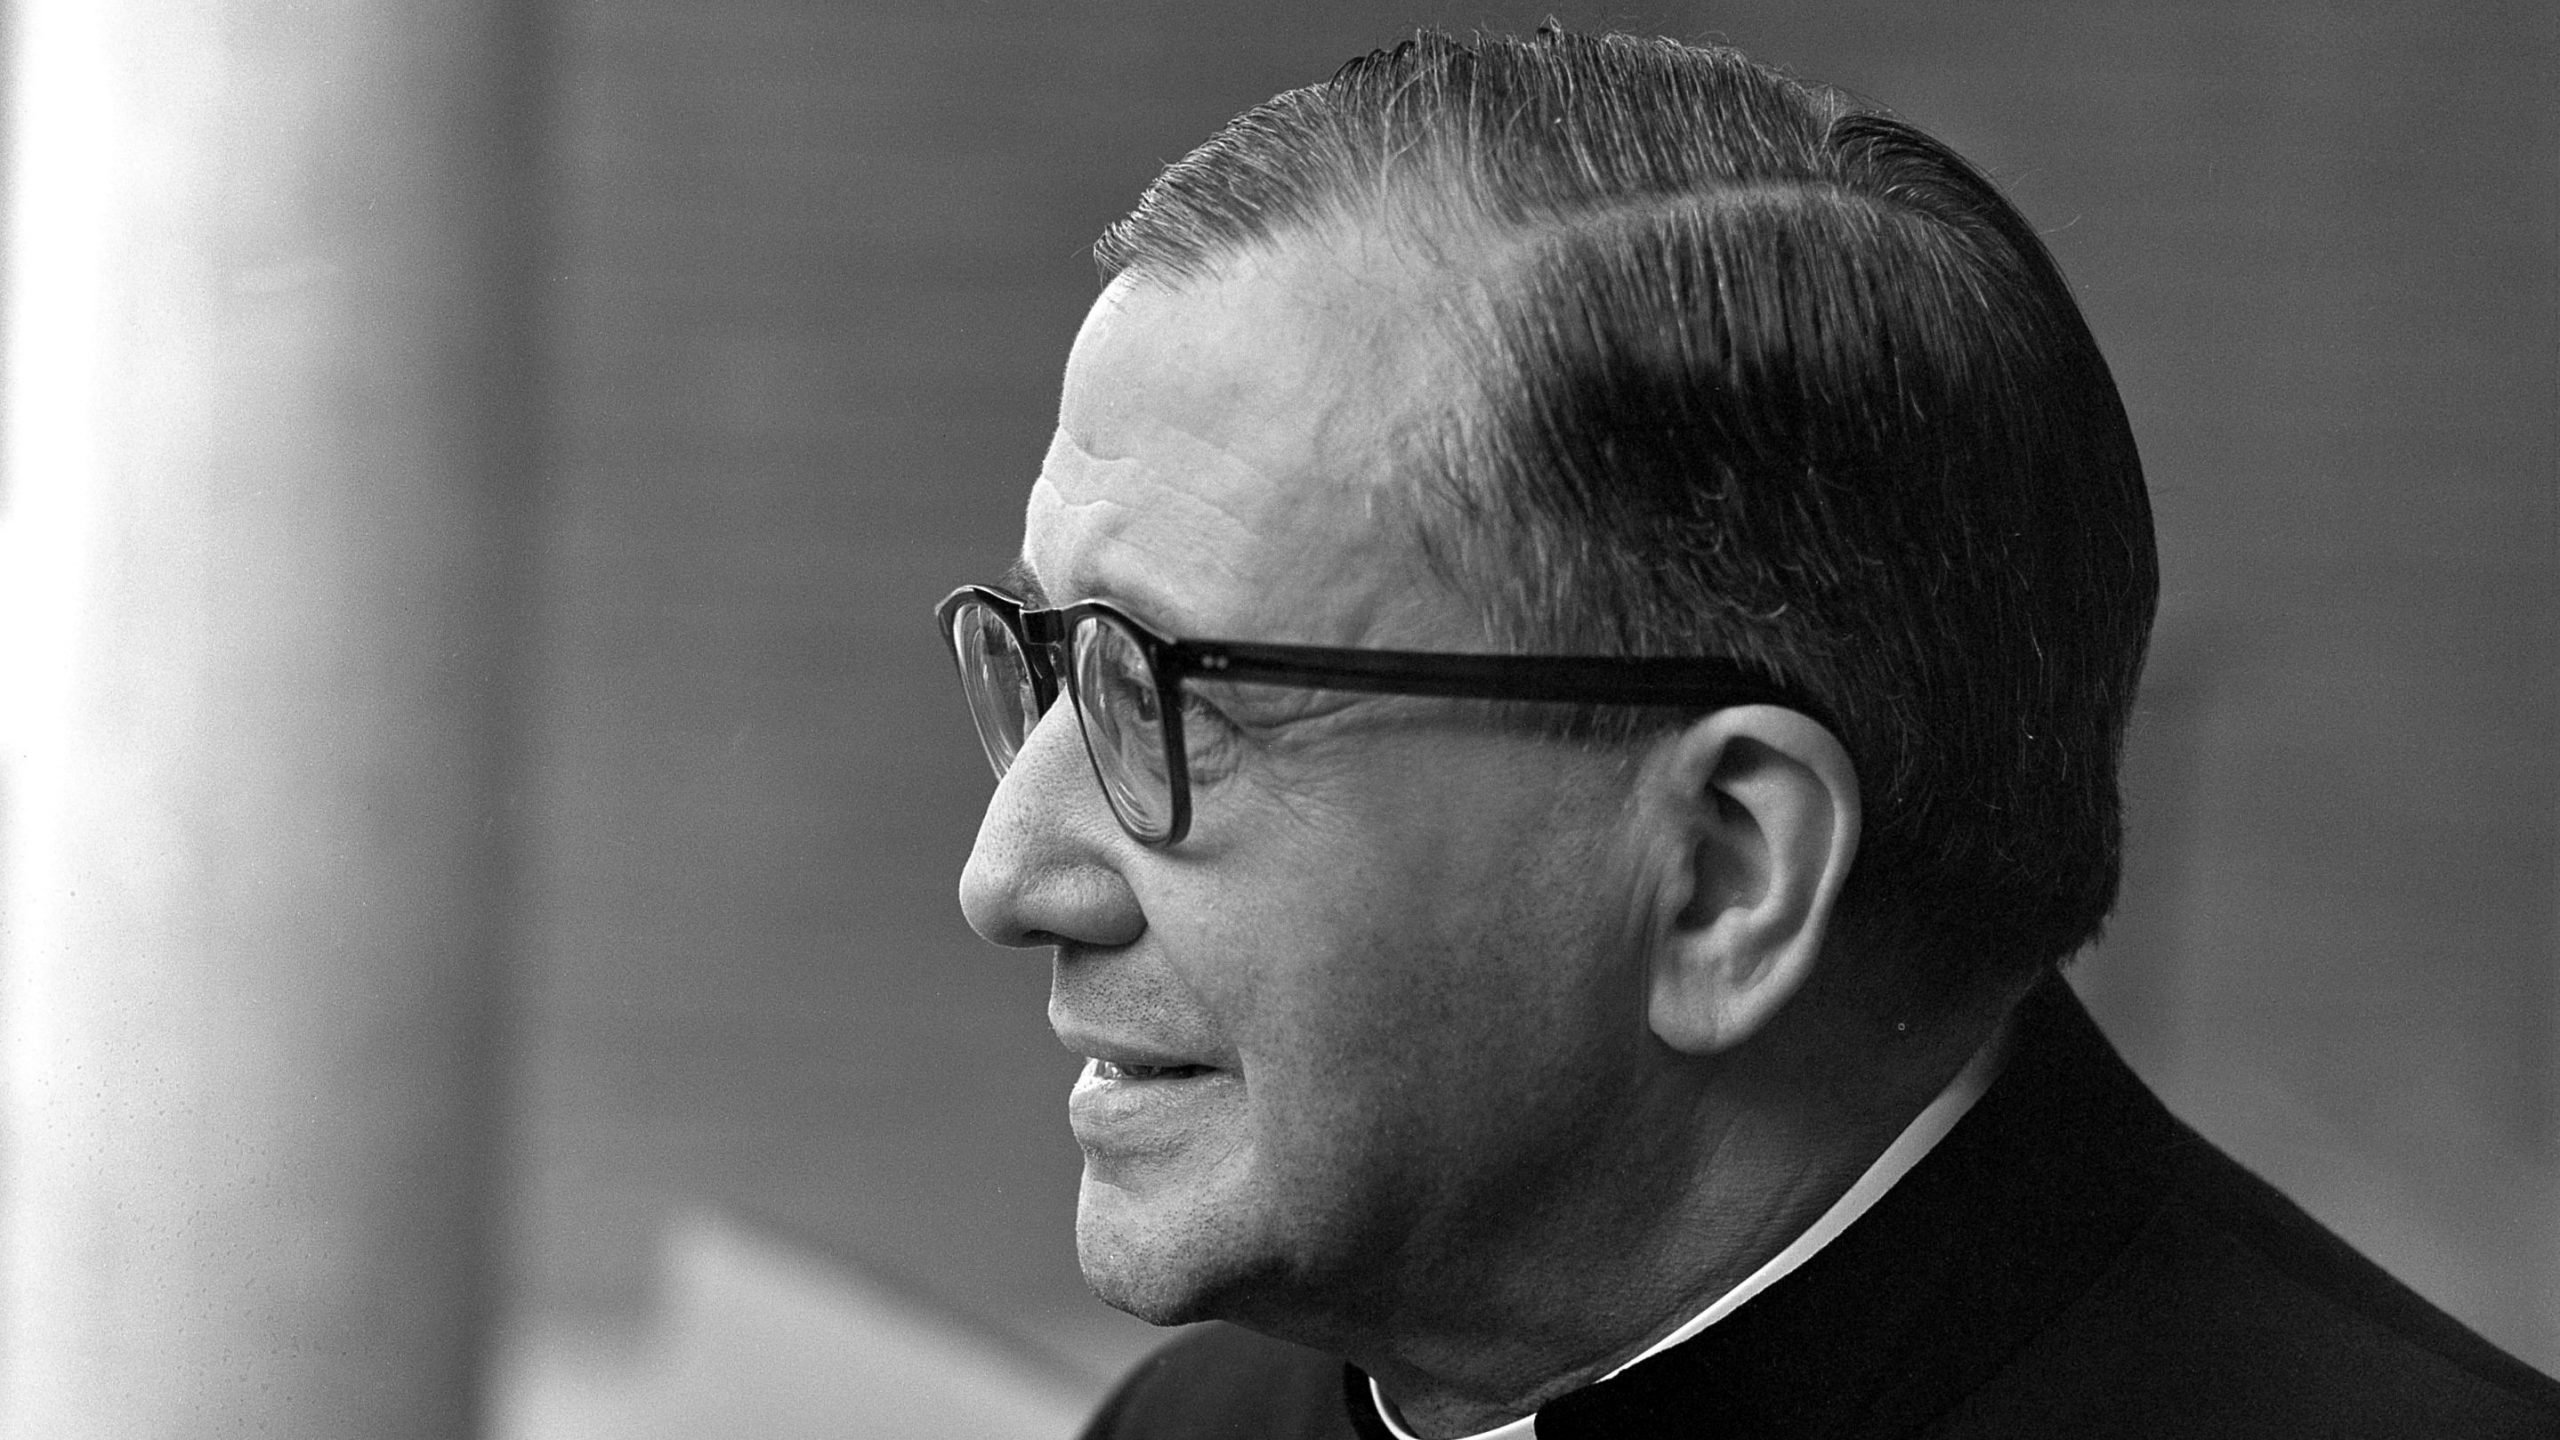 10 great quotes from St. Josemaria Escriva, founder of Opus Dei